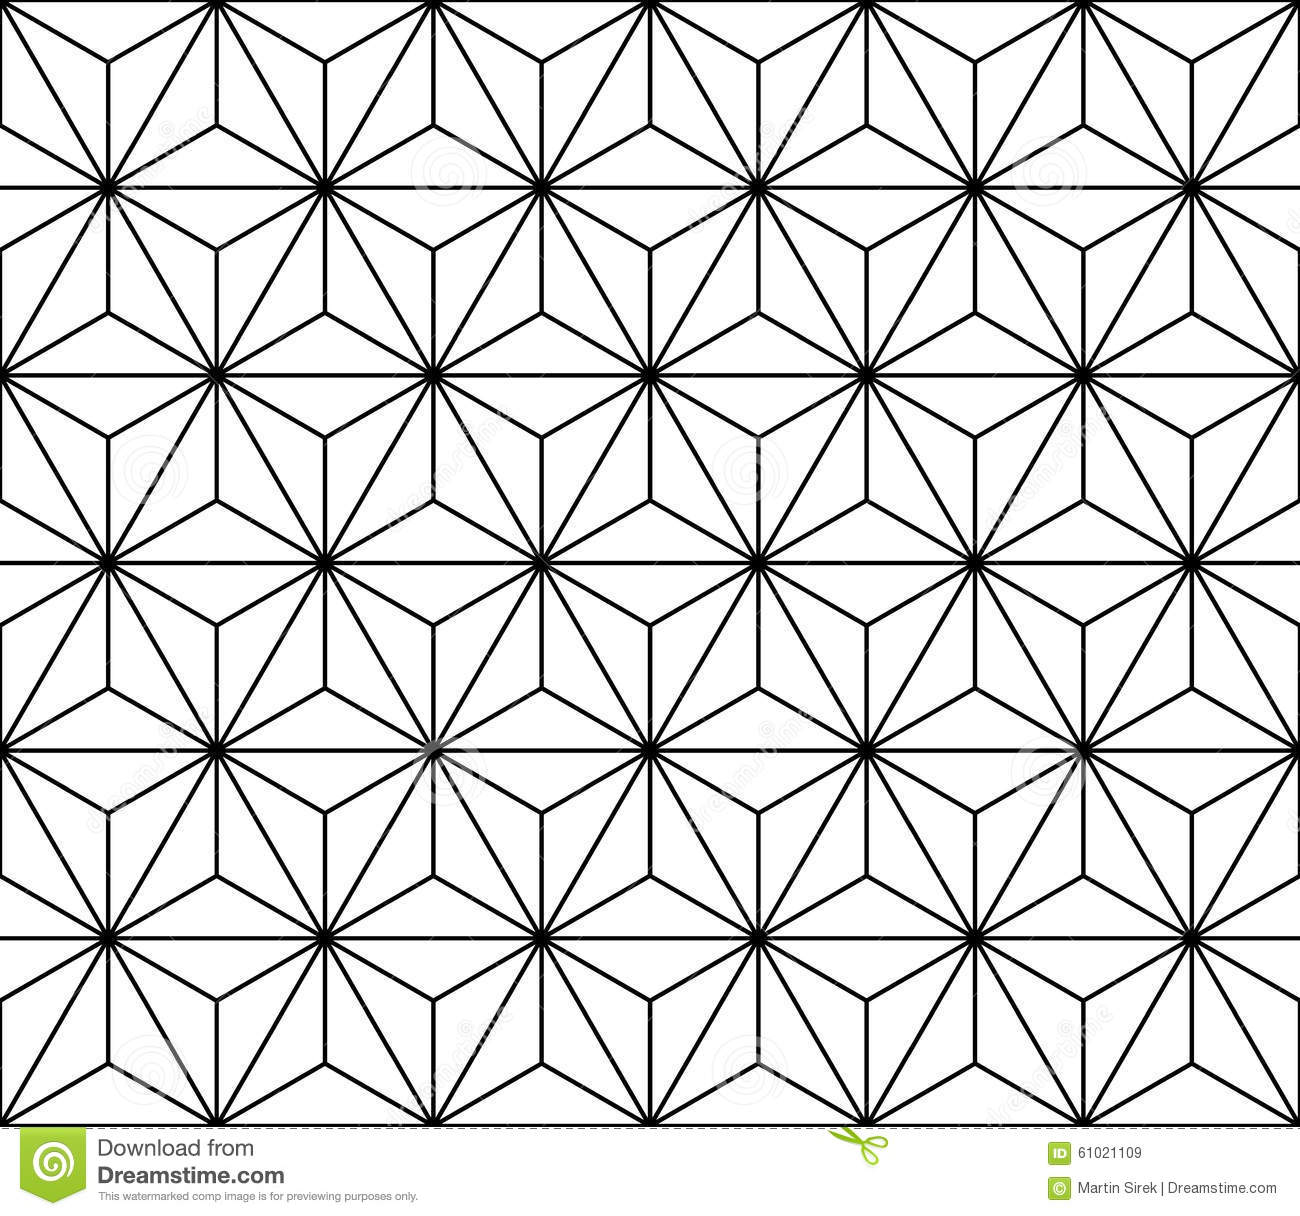 Elegant Download Vector Modern Seamless Sacred Geometry Pattern, Black And White  Abstract Stock Vector   Illustration